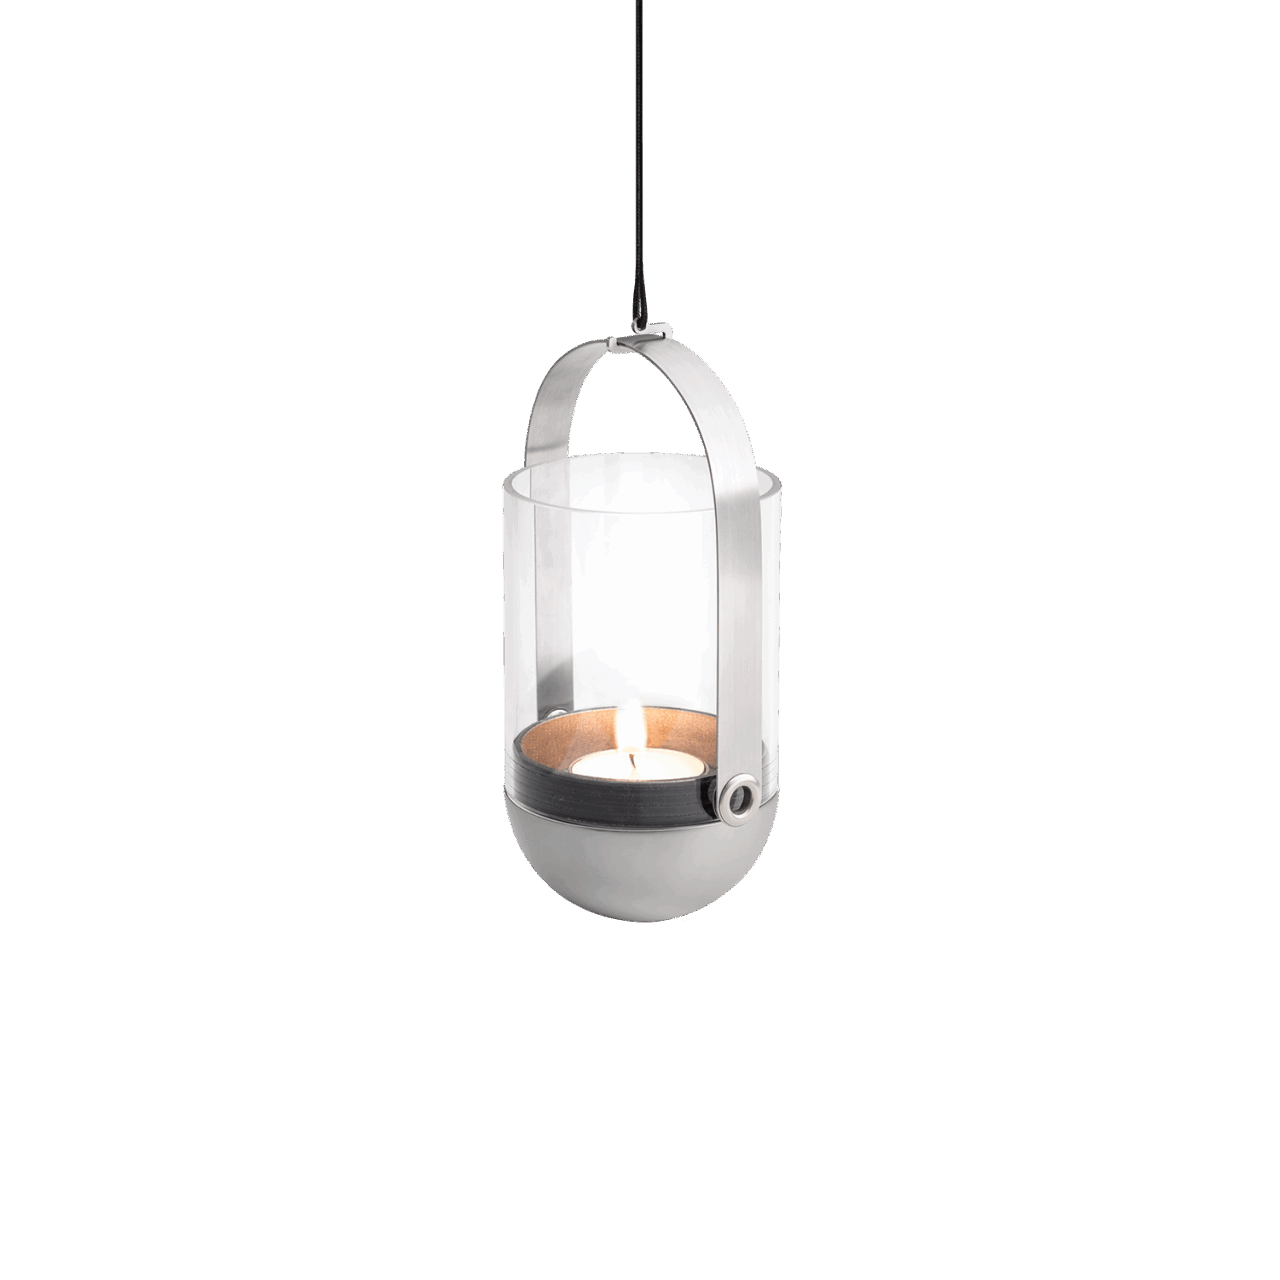 GRAVITY CANDLE Hanger